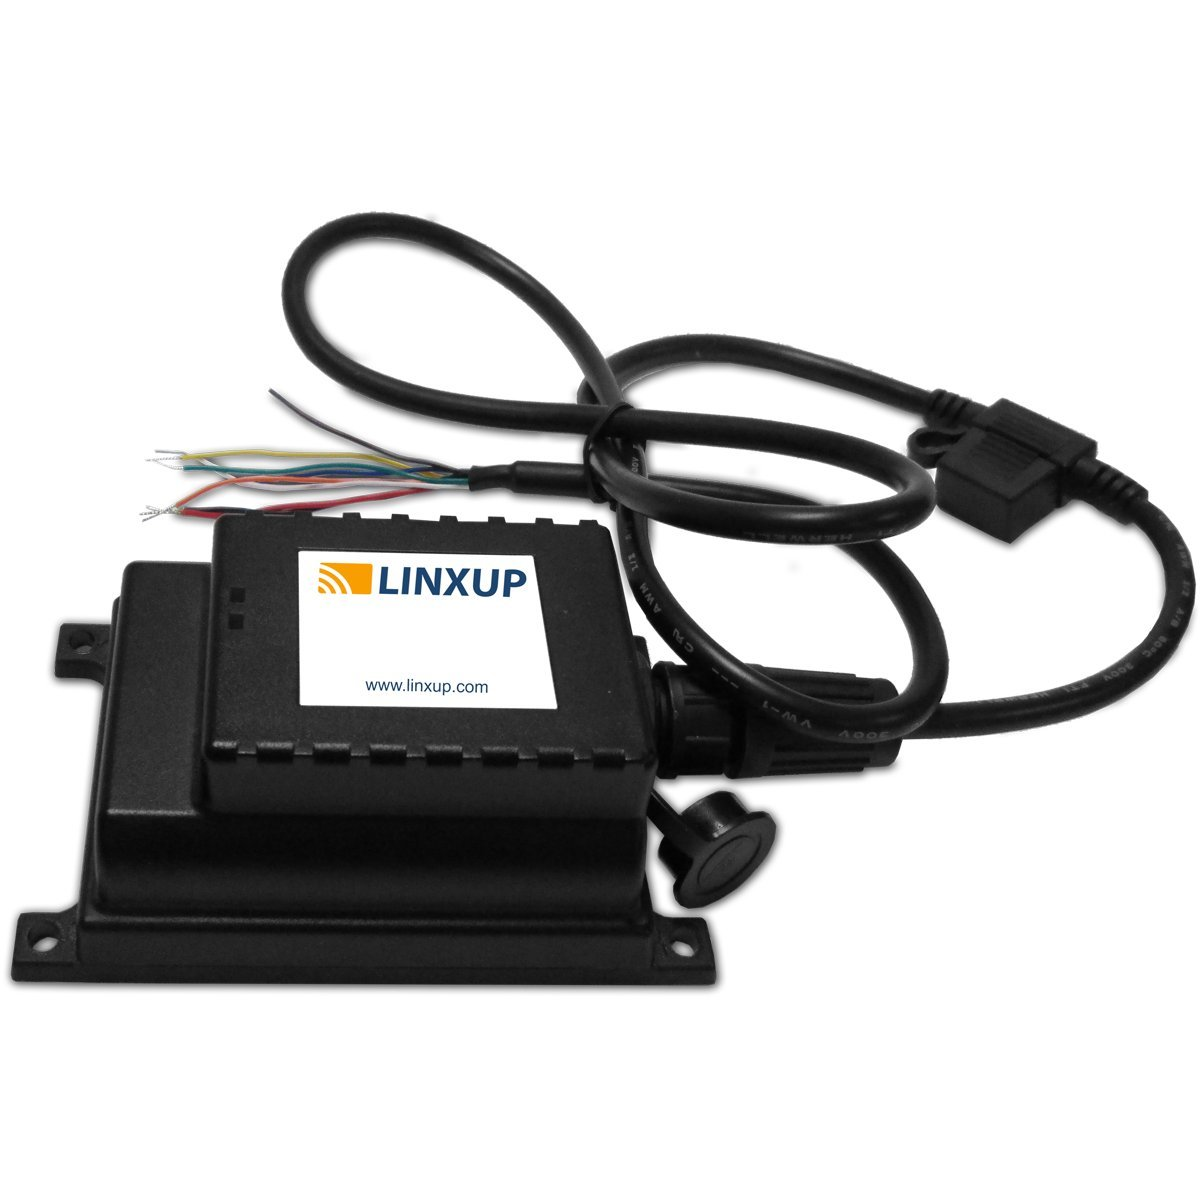 Linxup LAAA61 GPS Tracking Device, Locator for Trailers, Motorcycles, Boats with 6 Month Battery, Black by Linxup